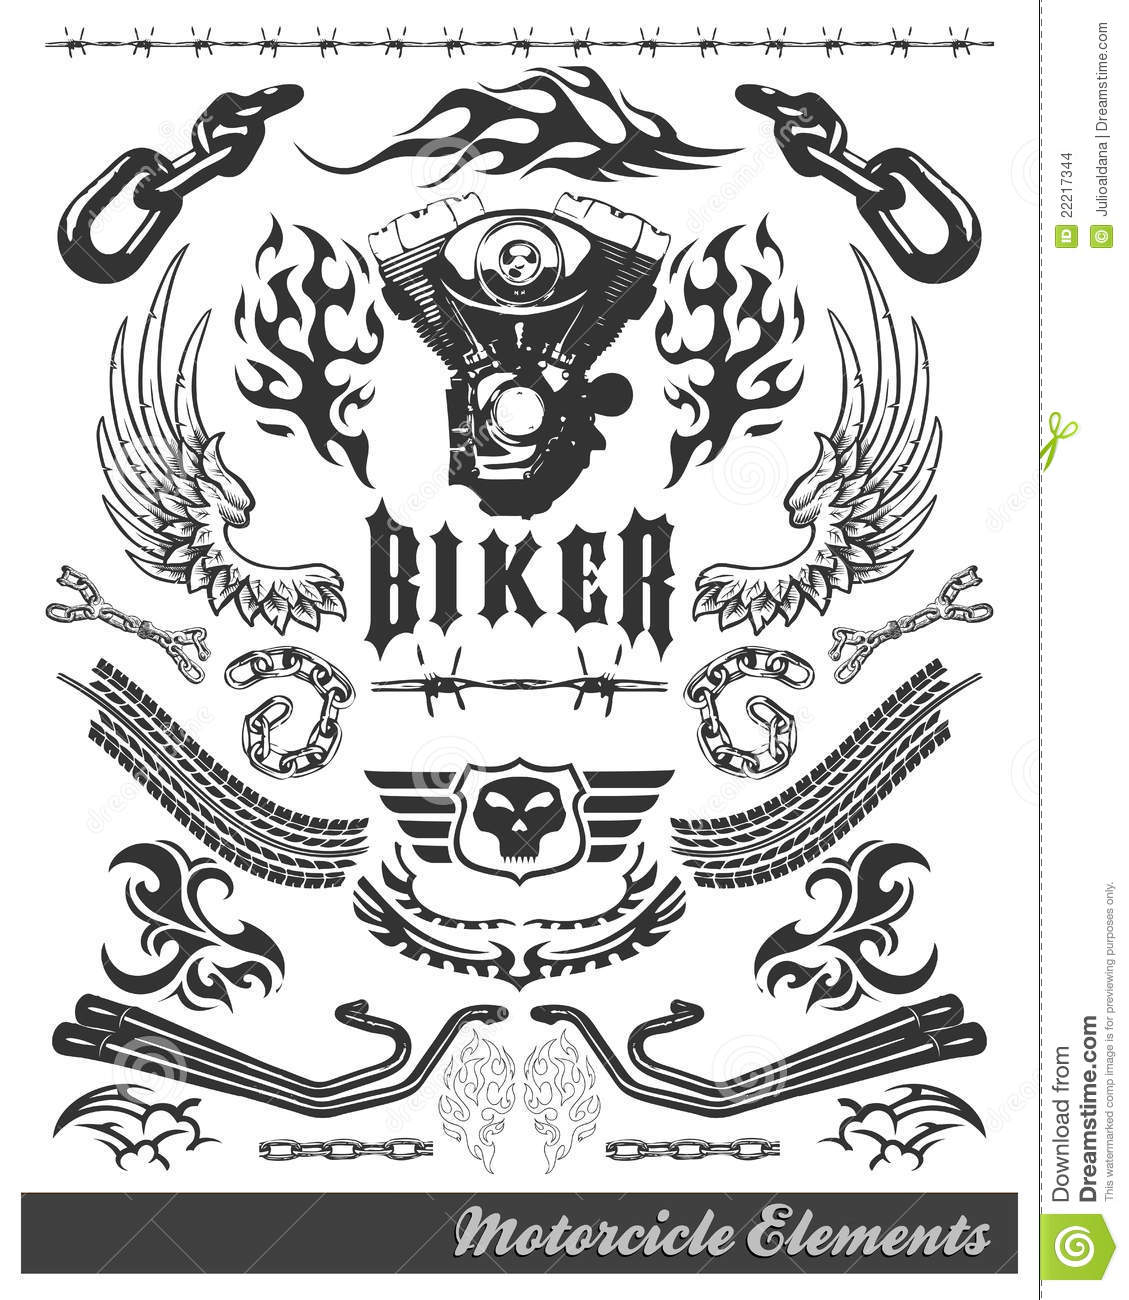 Chopper Motorcycle Elements - Vector - Eps Stock Images - Image ...